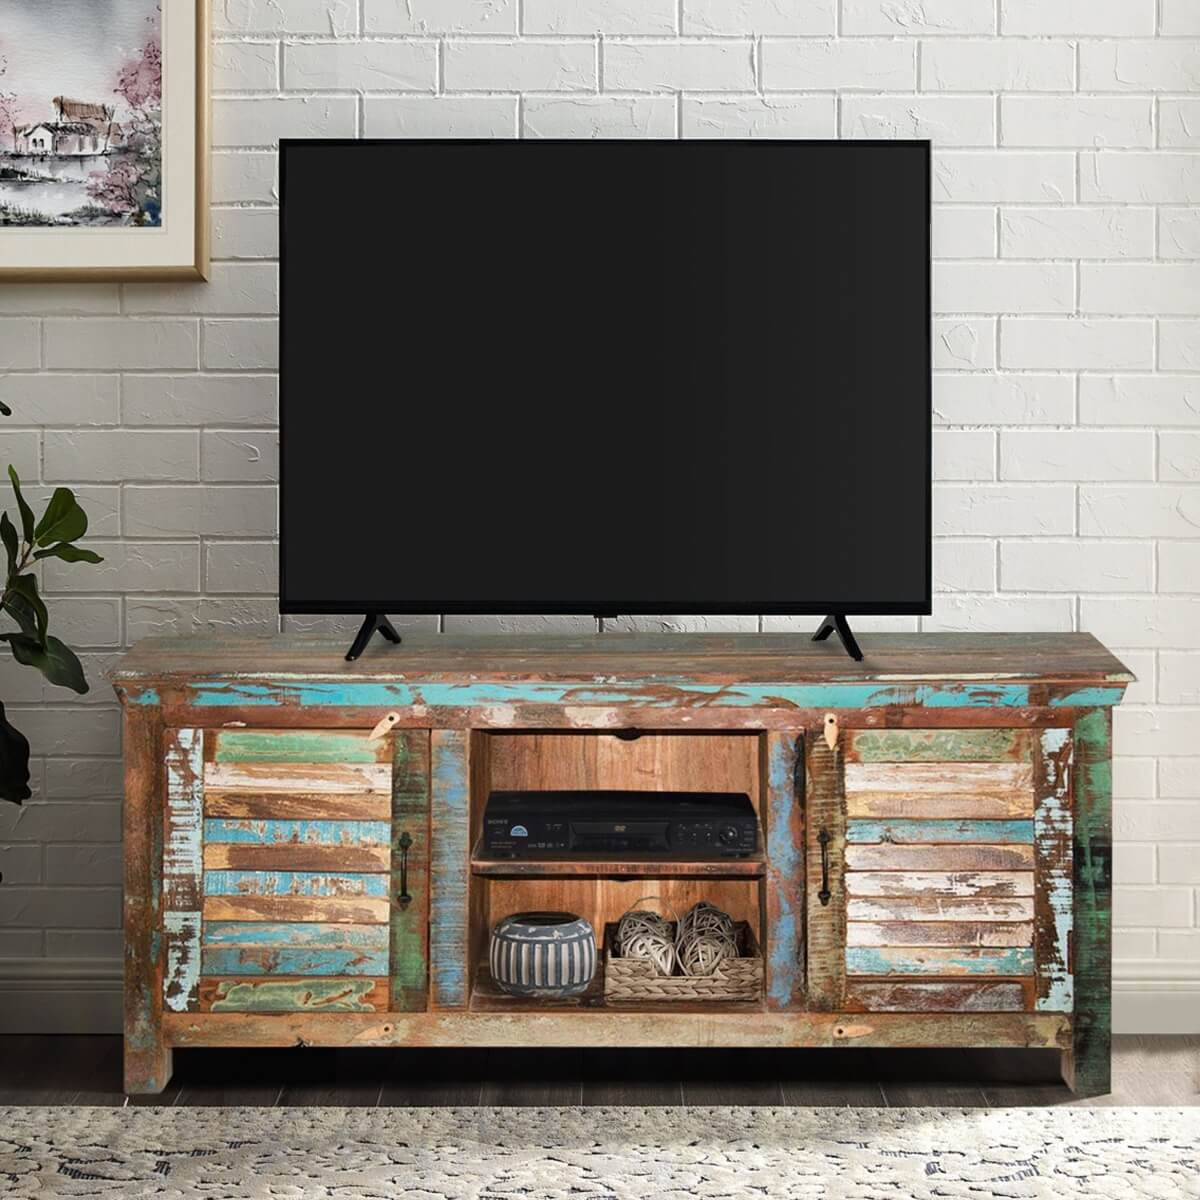 reclaimed wood tv stand Fenwick Rustic Reclaimed Wood Shutter Door TV Stand Media Console reclaimed wood tv stand